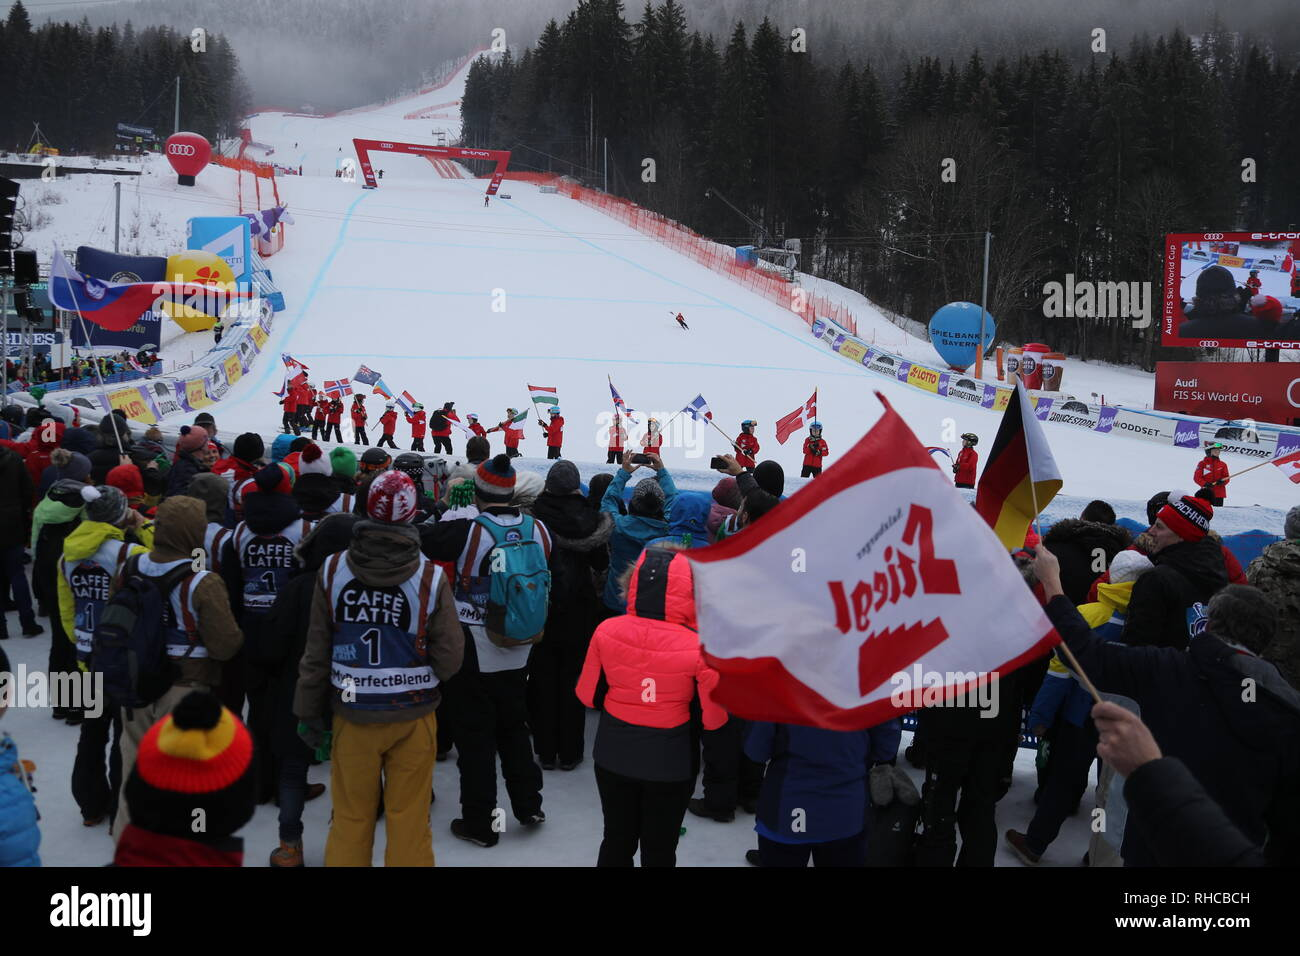 Garmisch Partenkirchen, Germany. 02nd Feb, 2019. Alpine skiing, World Cup, Downhill, Men: spectators and the flag children after the cancellation of the downhill at the finish. Credit: Stephan Jansen/dpa/Alamy Live News - Stock Image